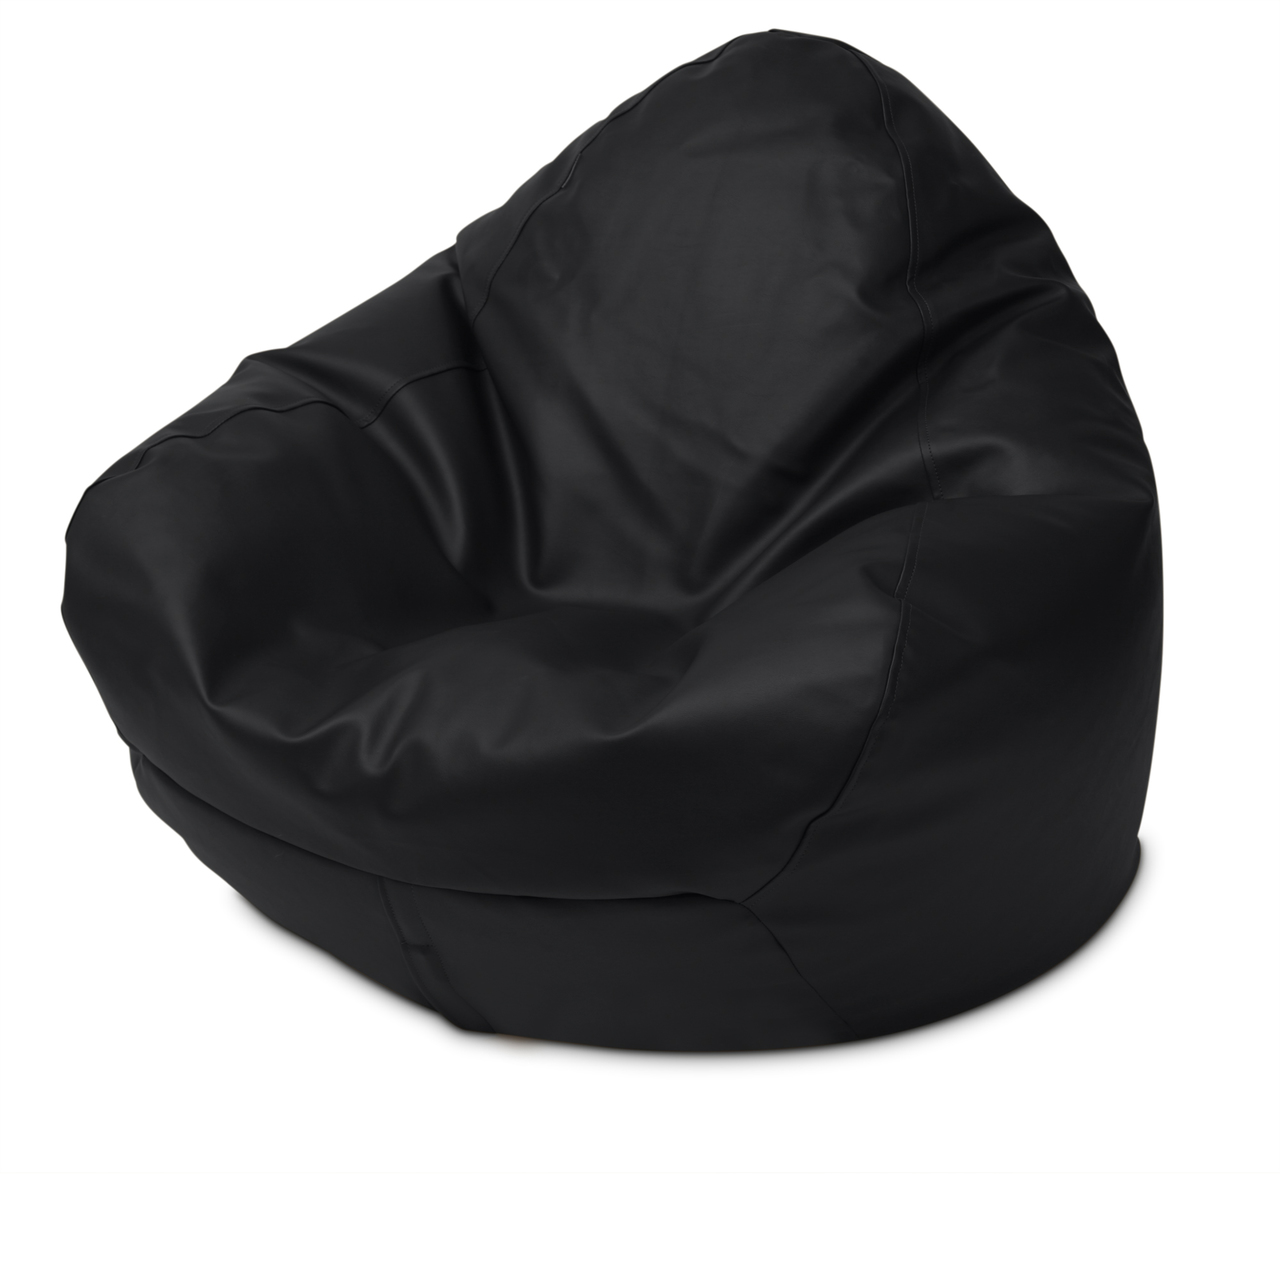 Classic Queen Size Bean Bag in black